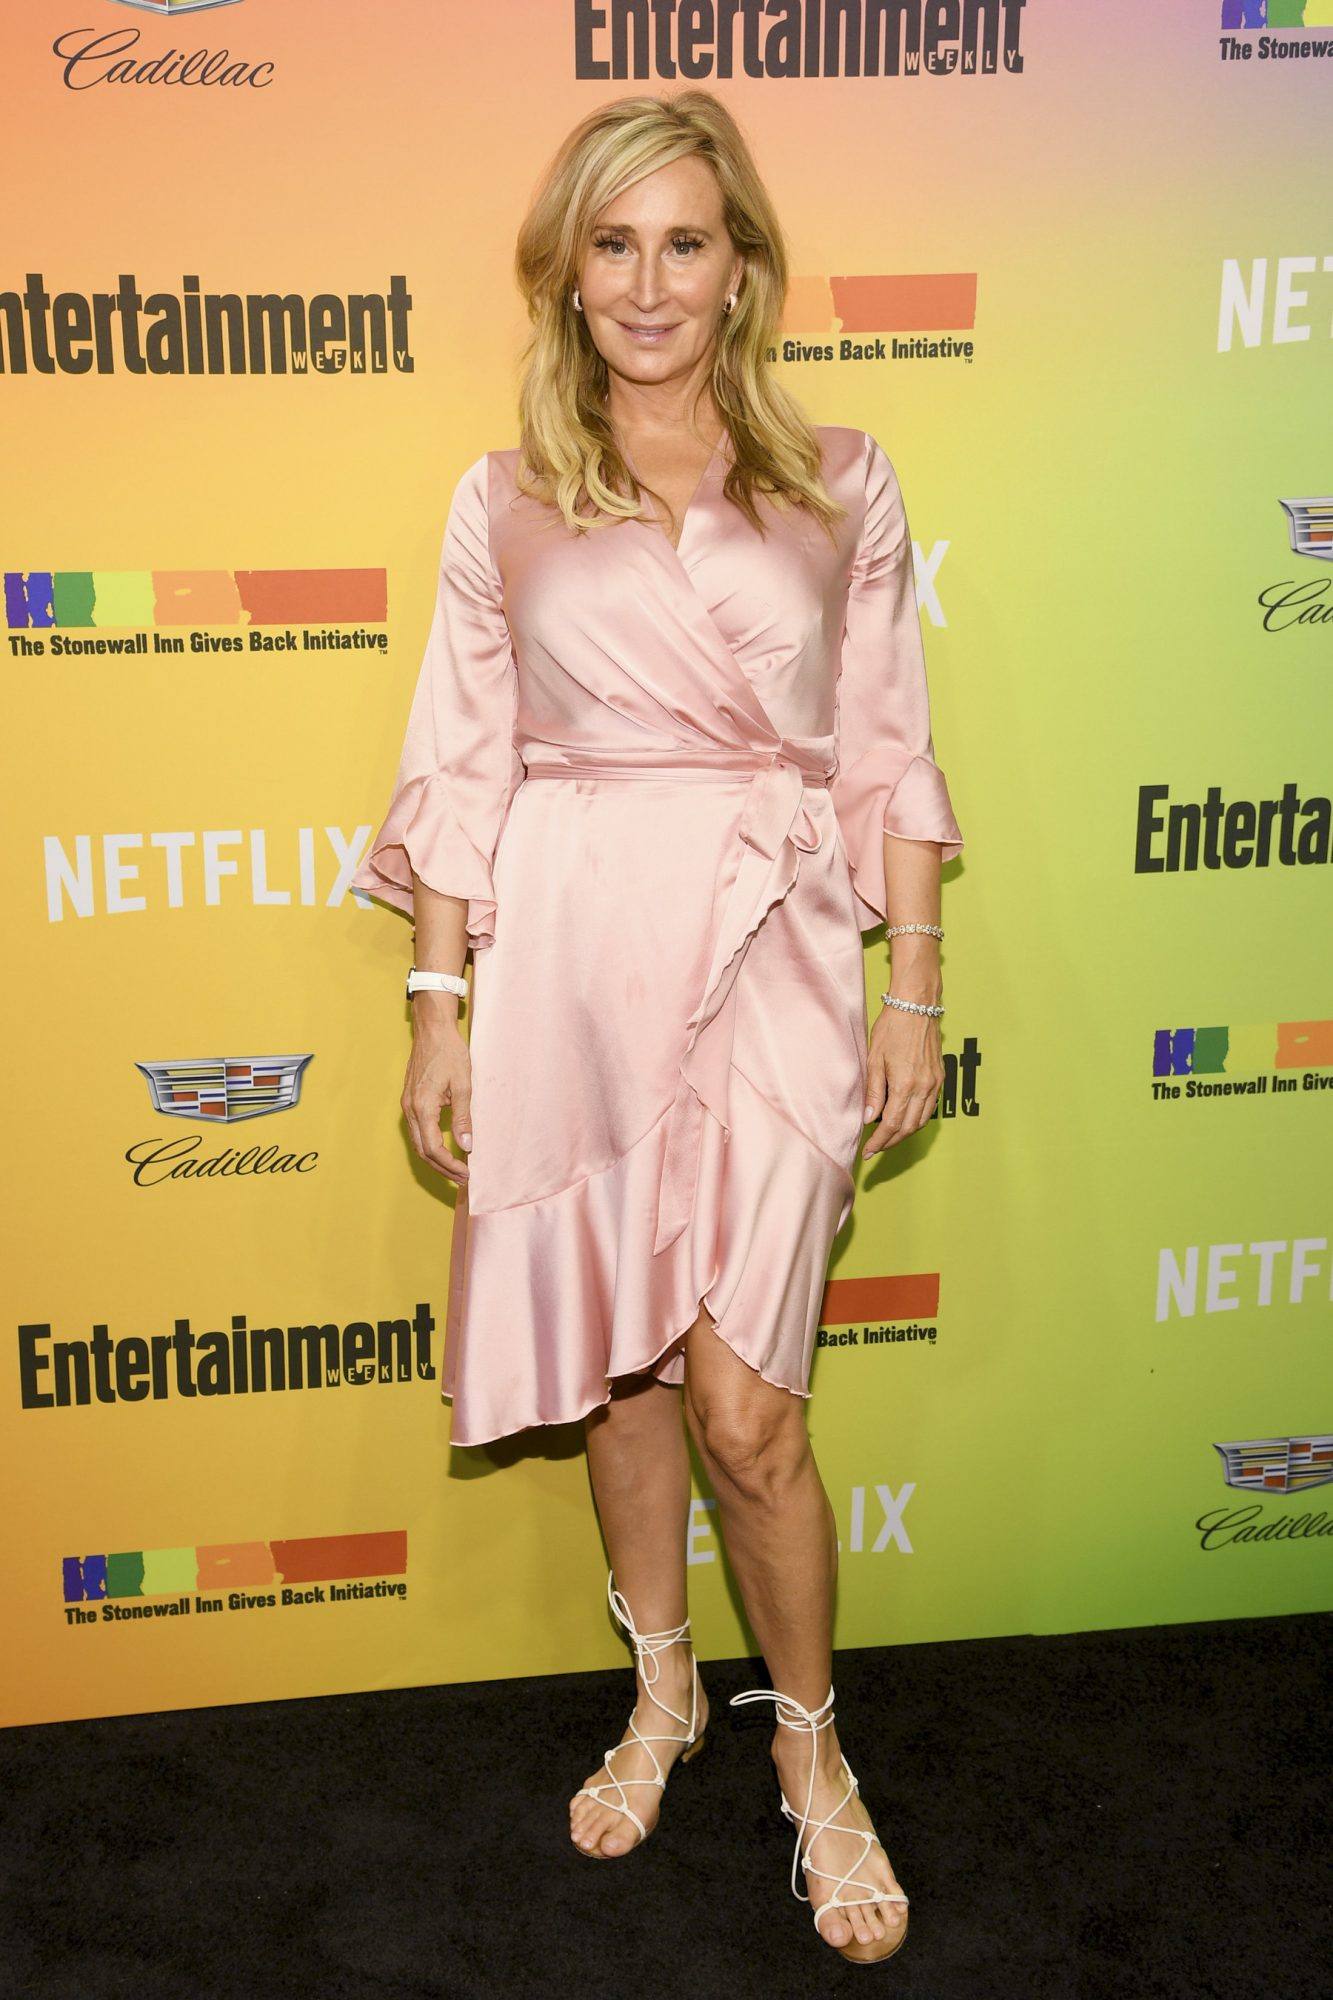 NEW YORK, NEW YORK - JUNE 05: Sonja Morgan attends as Entertainment Weekly Celebrates Its Annual LGBTQ Issue at the Stonewall Inn on June 05, 2019 in New York City. (Photo by Dimitrios Kambouris/Getty Images for Entertainment Weekly)